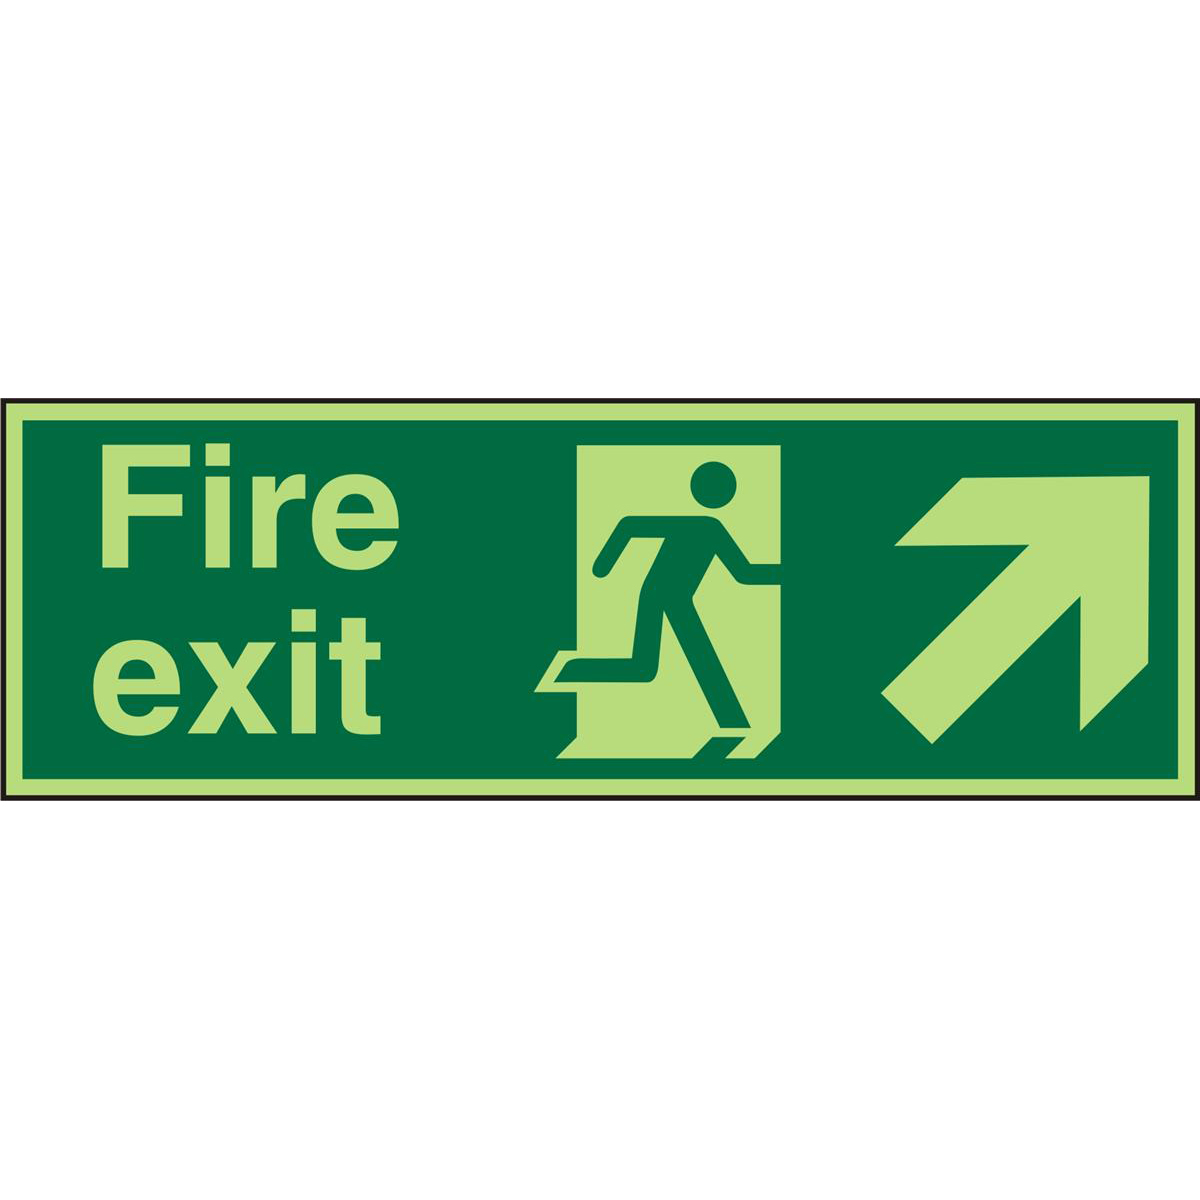 PhotolumSgns 450x150 FireExit Man Running Right&Arrow trhc Ref PACSP316450x150 *Up to 10 Day Leadtime*